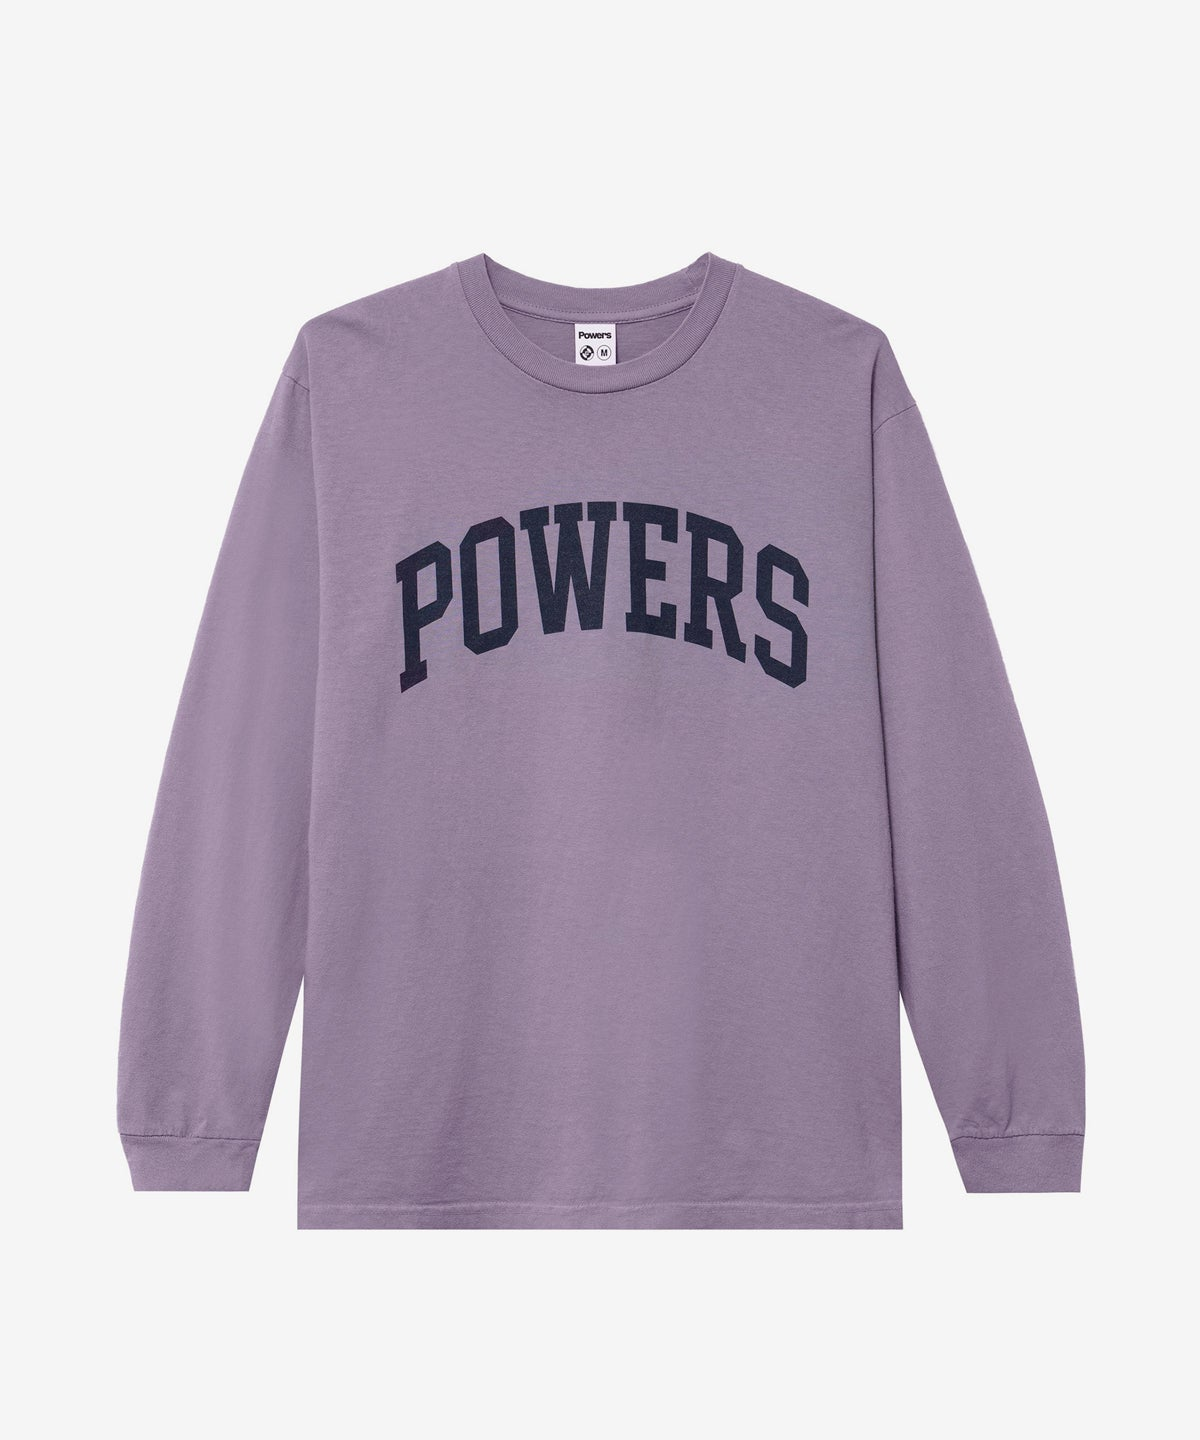 Image of POWERS_ARCH LONG SLEEVE :::MUTED PLUM:::